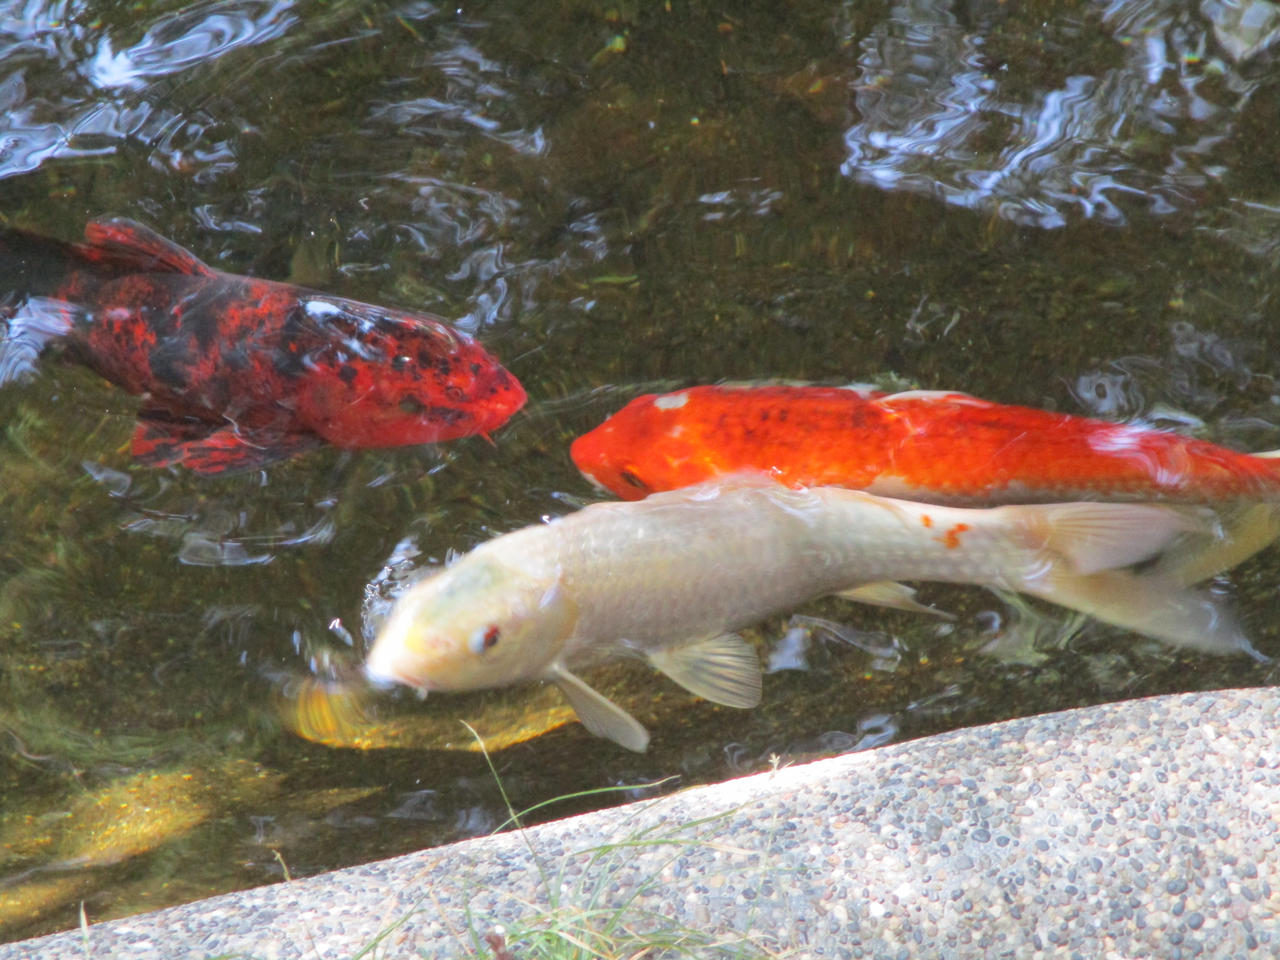 koi fish swimming in their pond by kylgrv on deviantart